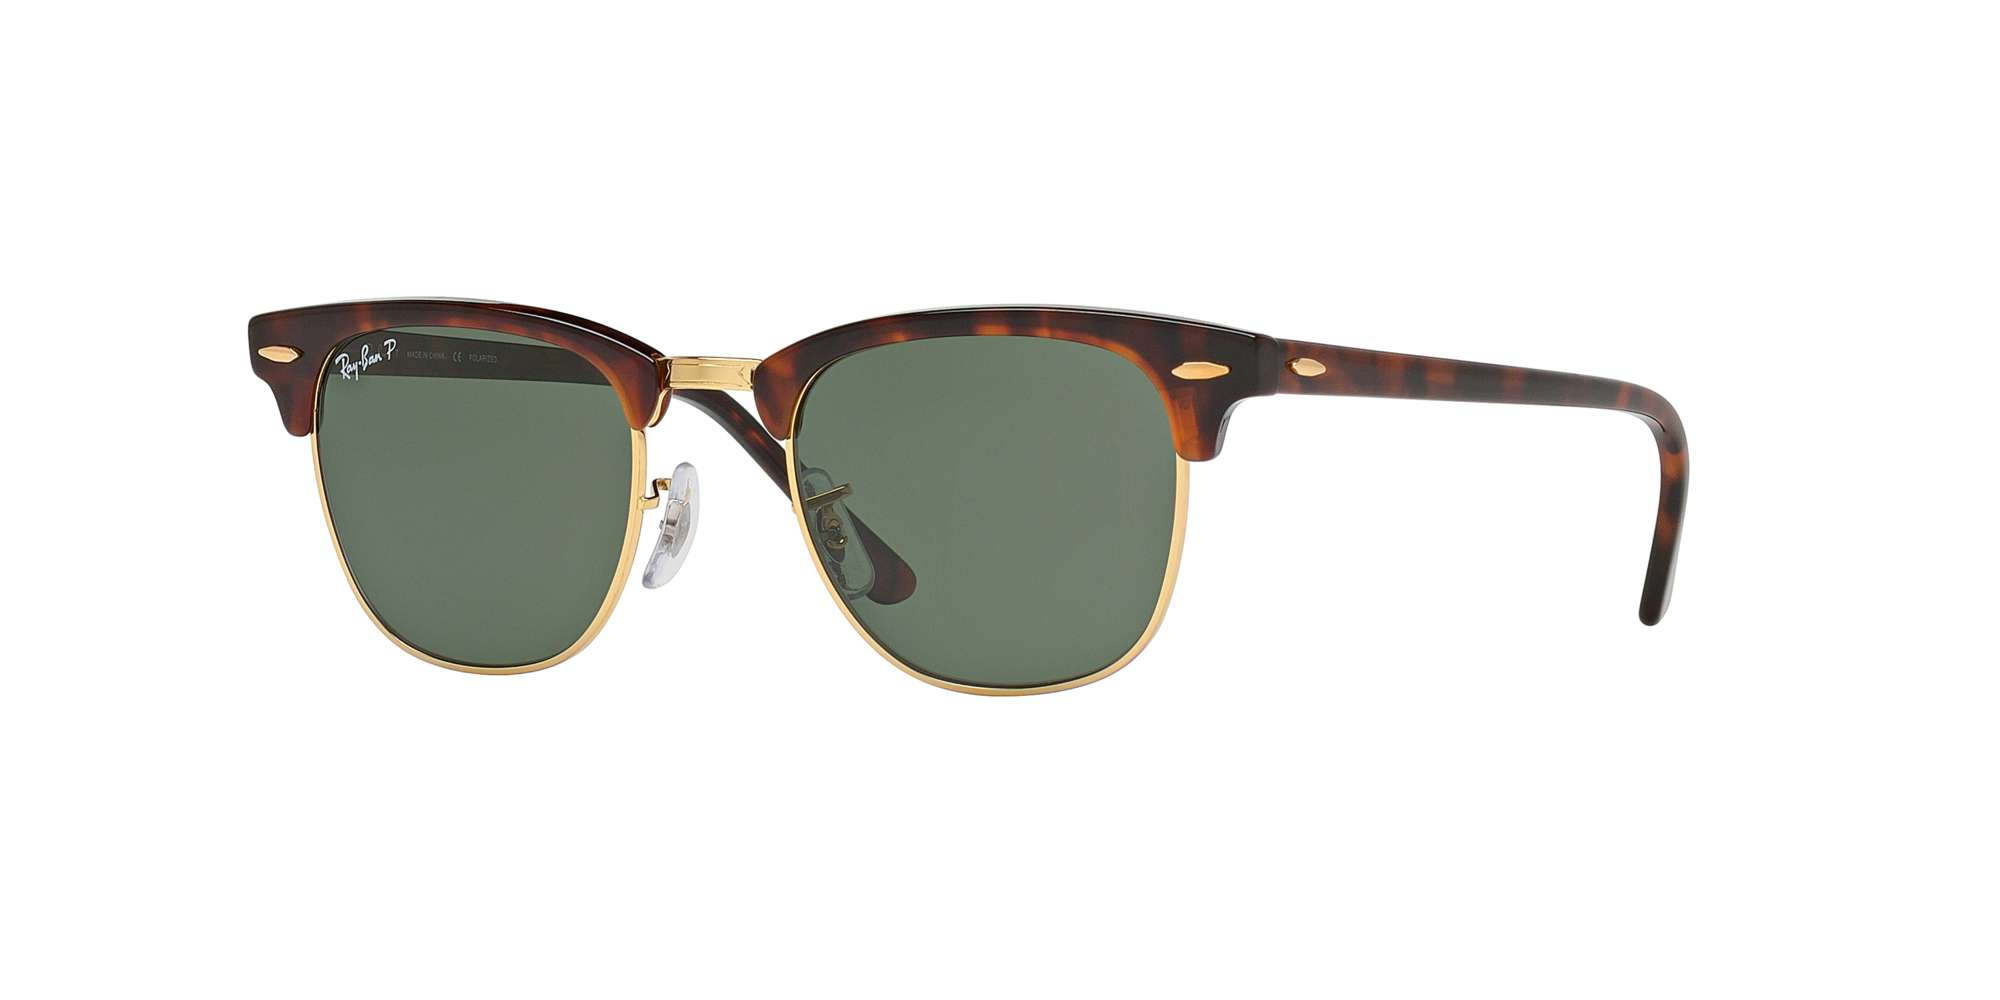 RED HAVANA / CRYSTAL GREEN POLARIZED lenses